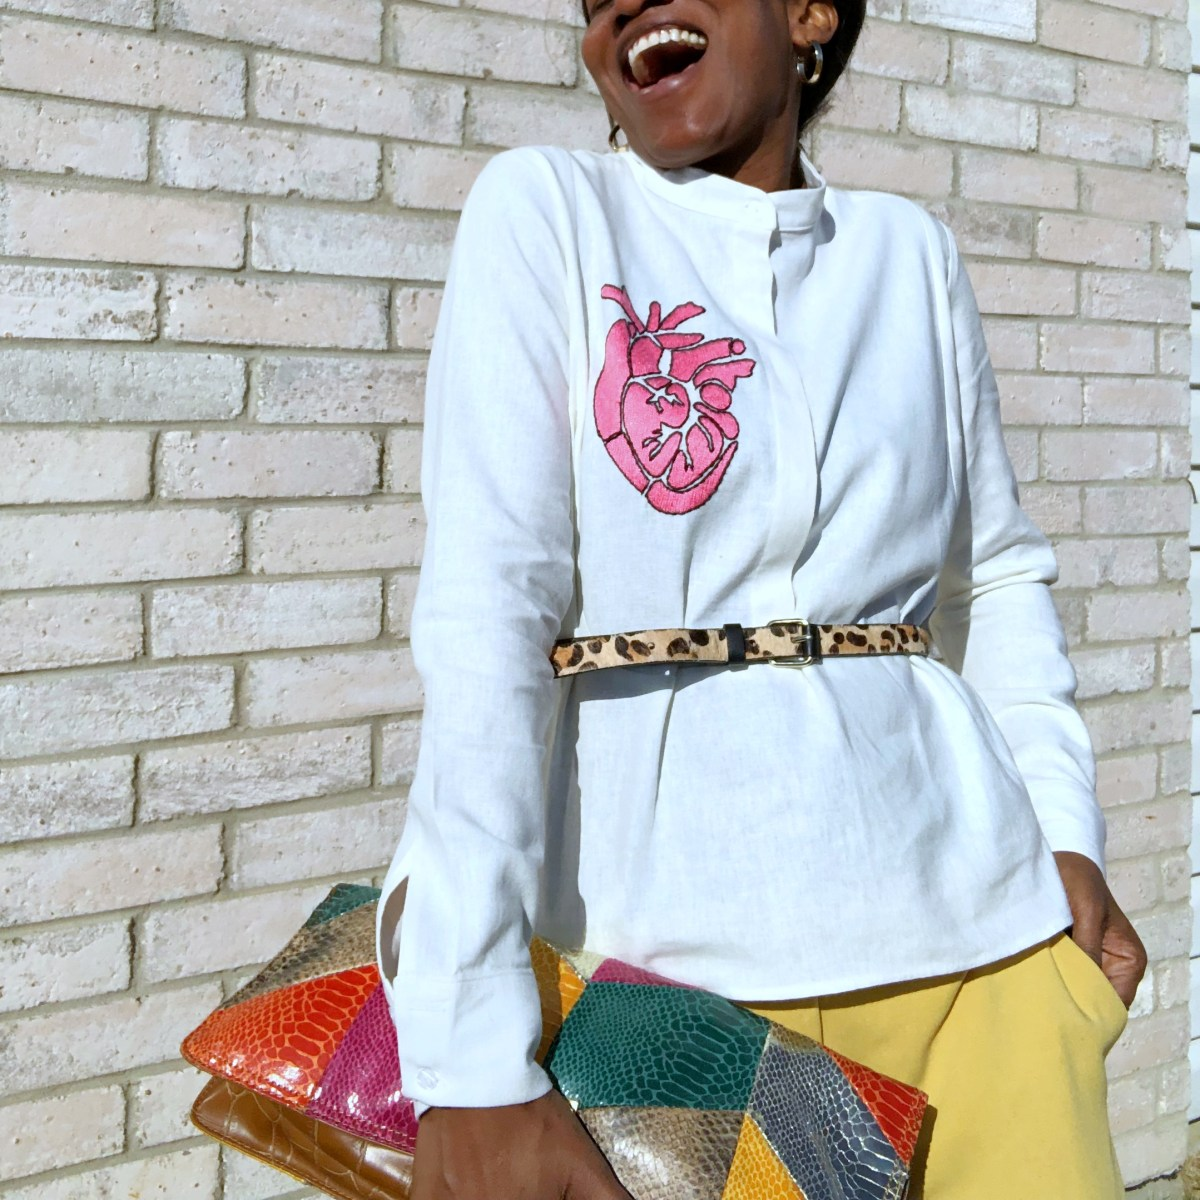 The Embroidered Amor and Rosas Anguilla Shirt - Valentines Giveaway